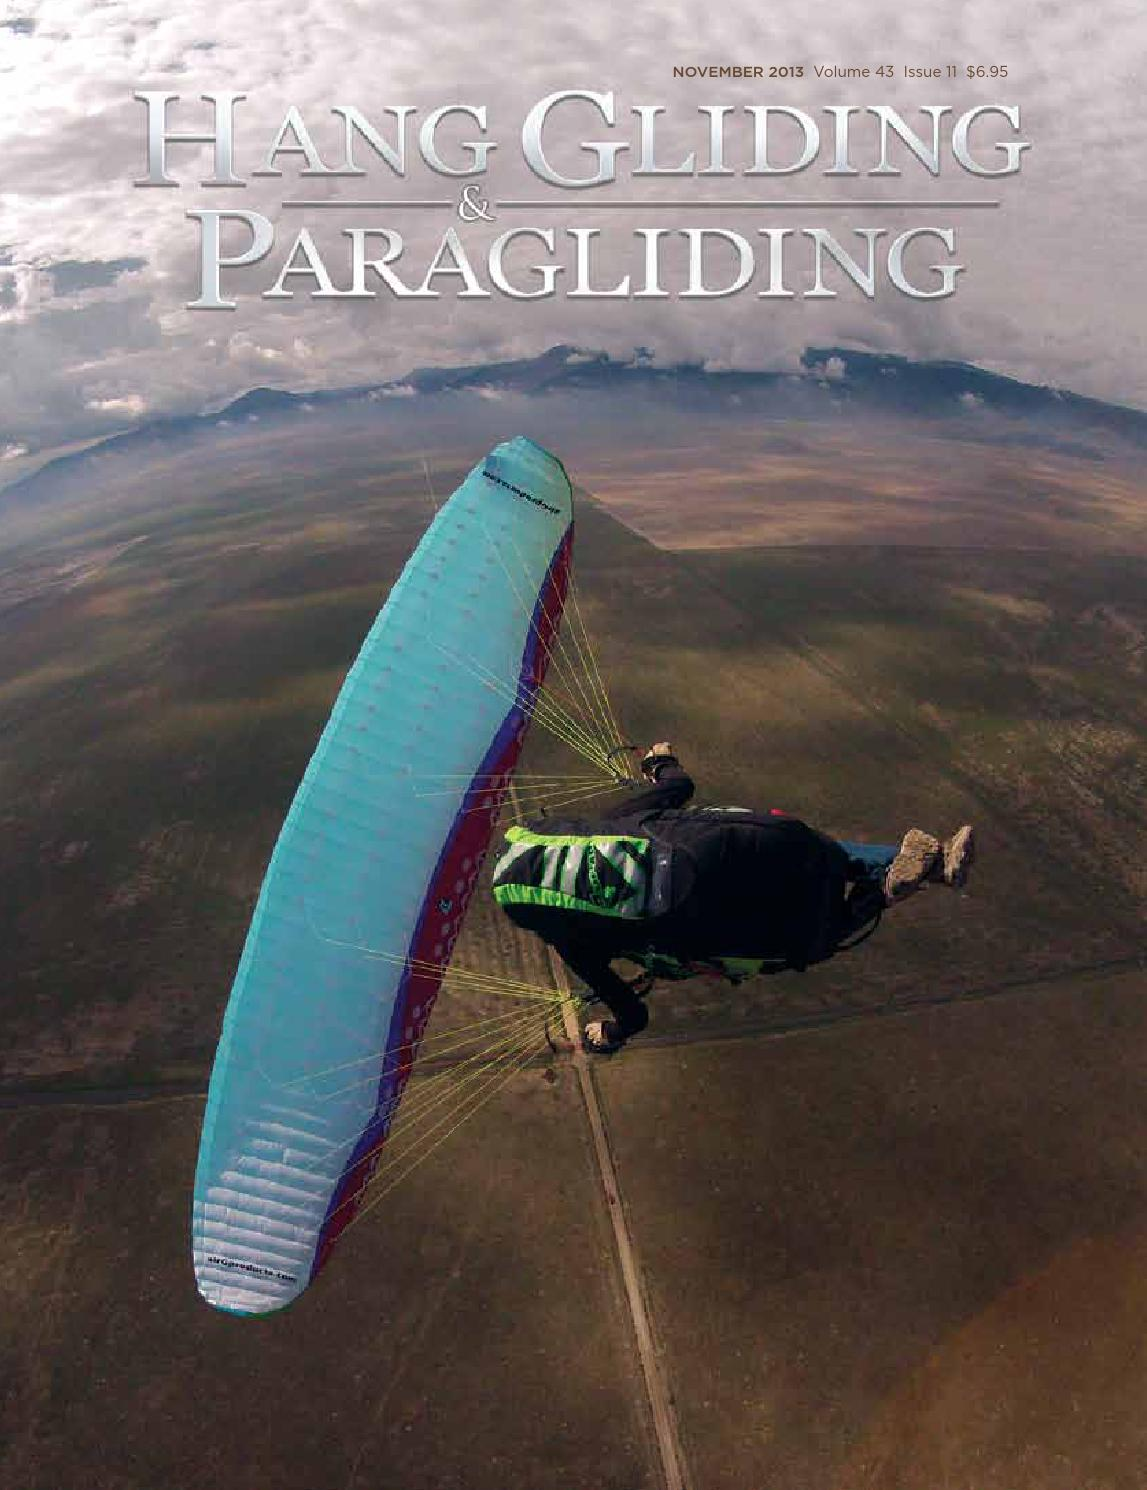 Hang Gliding & Paragliding Vol43/Iss11 Nov 2013 by US Hang